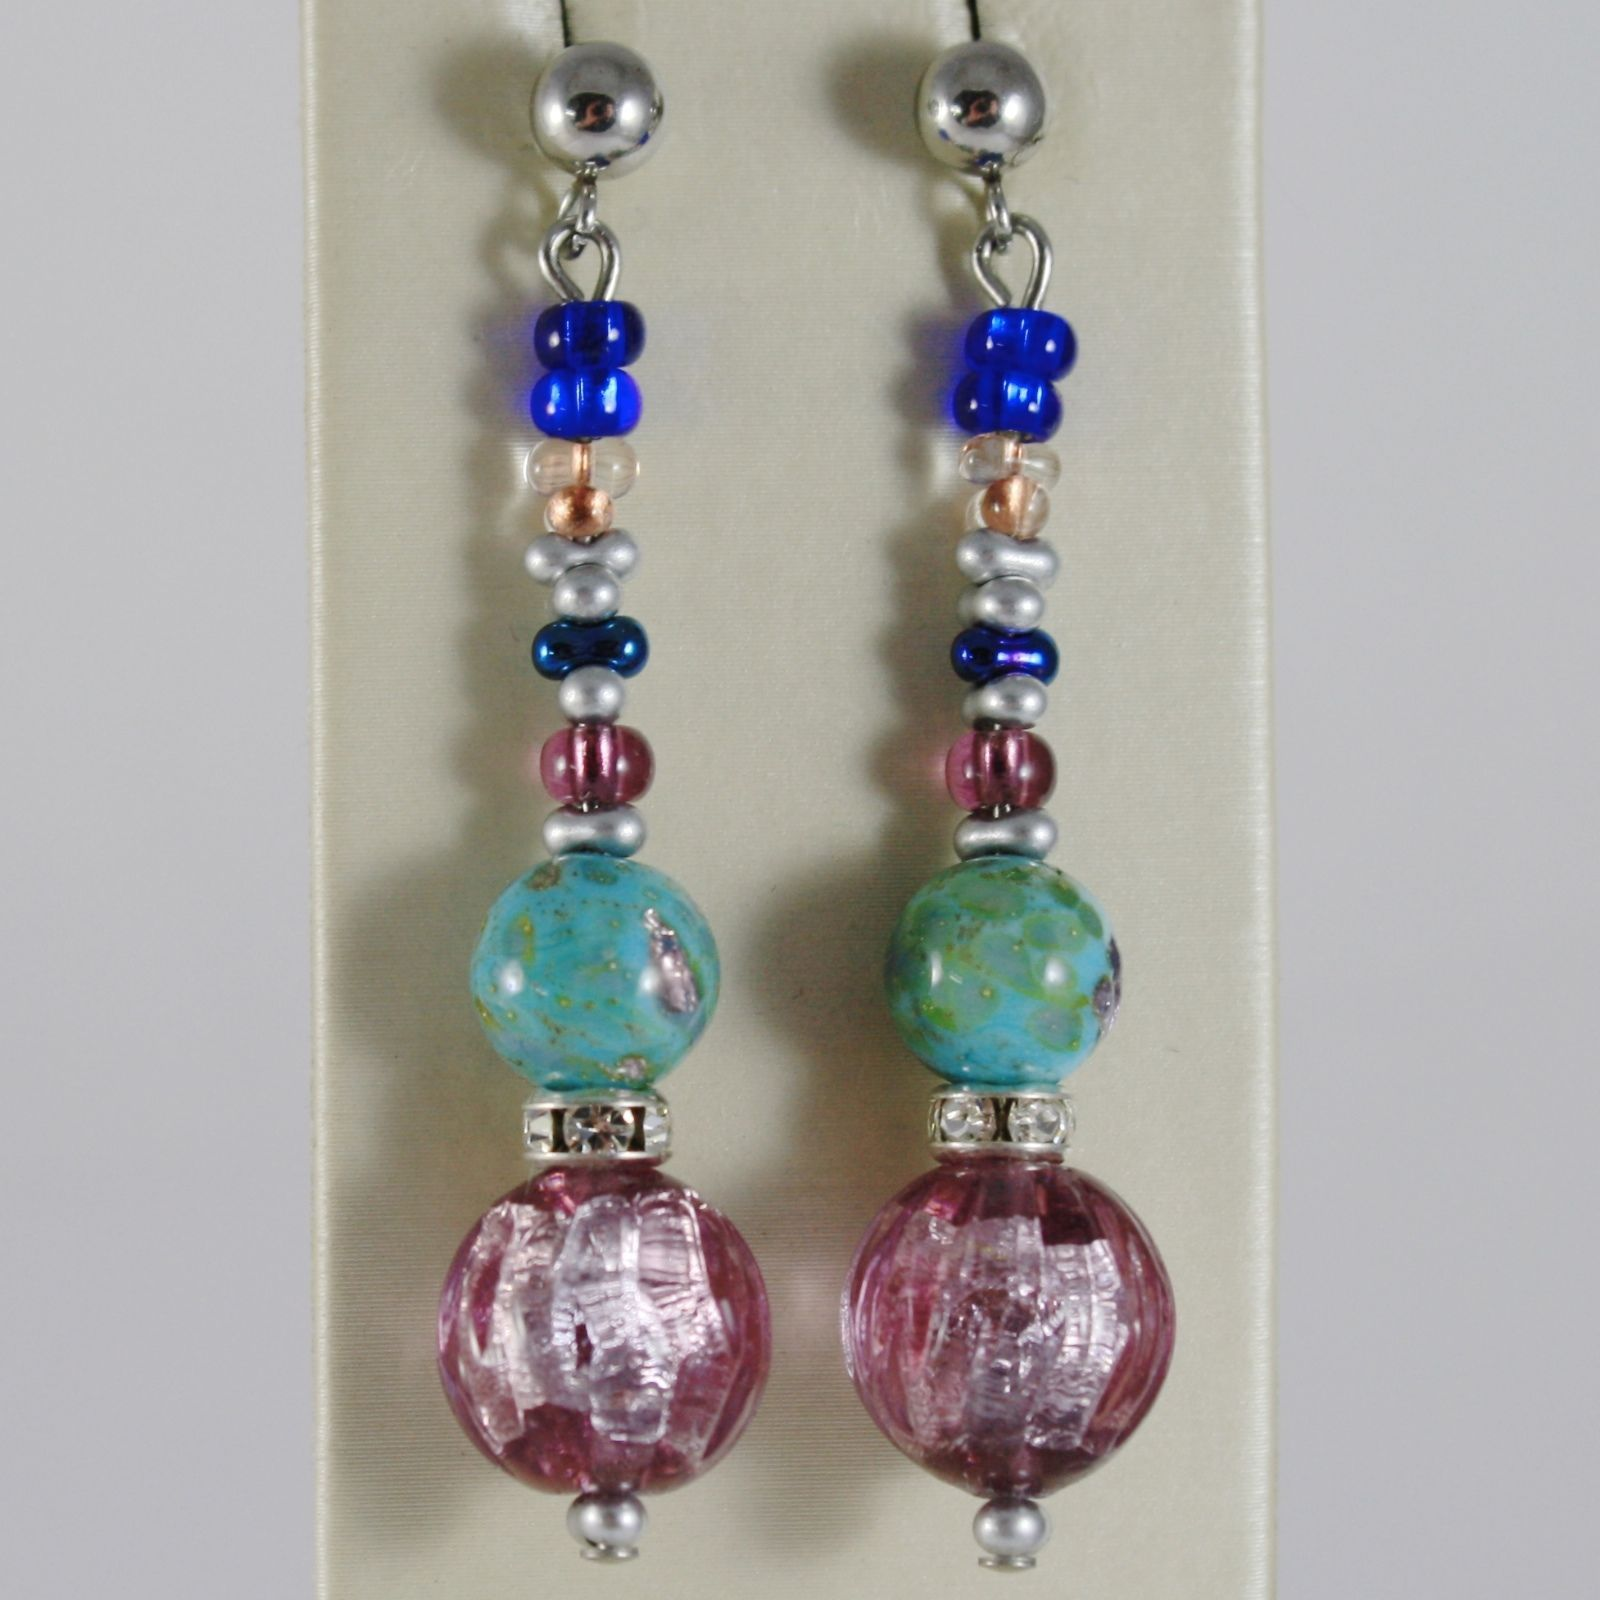 ANTICA MURRINA VENEZIA PENDANT EARRINGS BLUE PURPLE WORKED BALLS, BALL